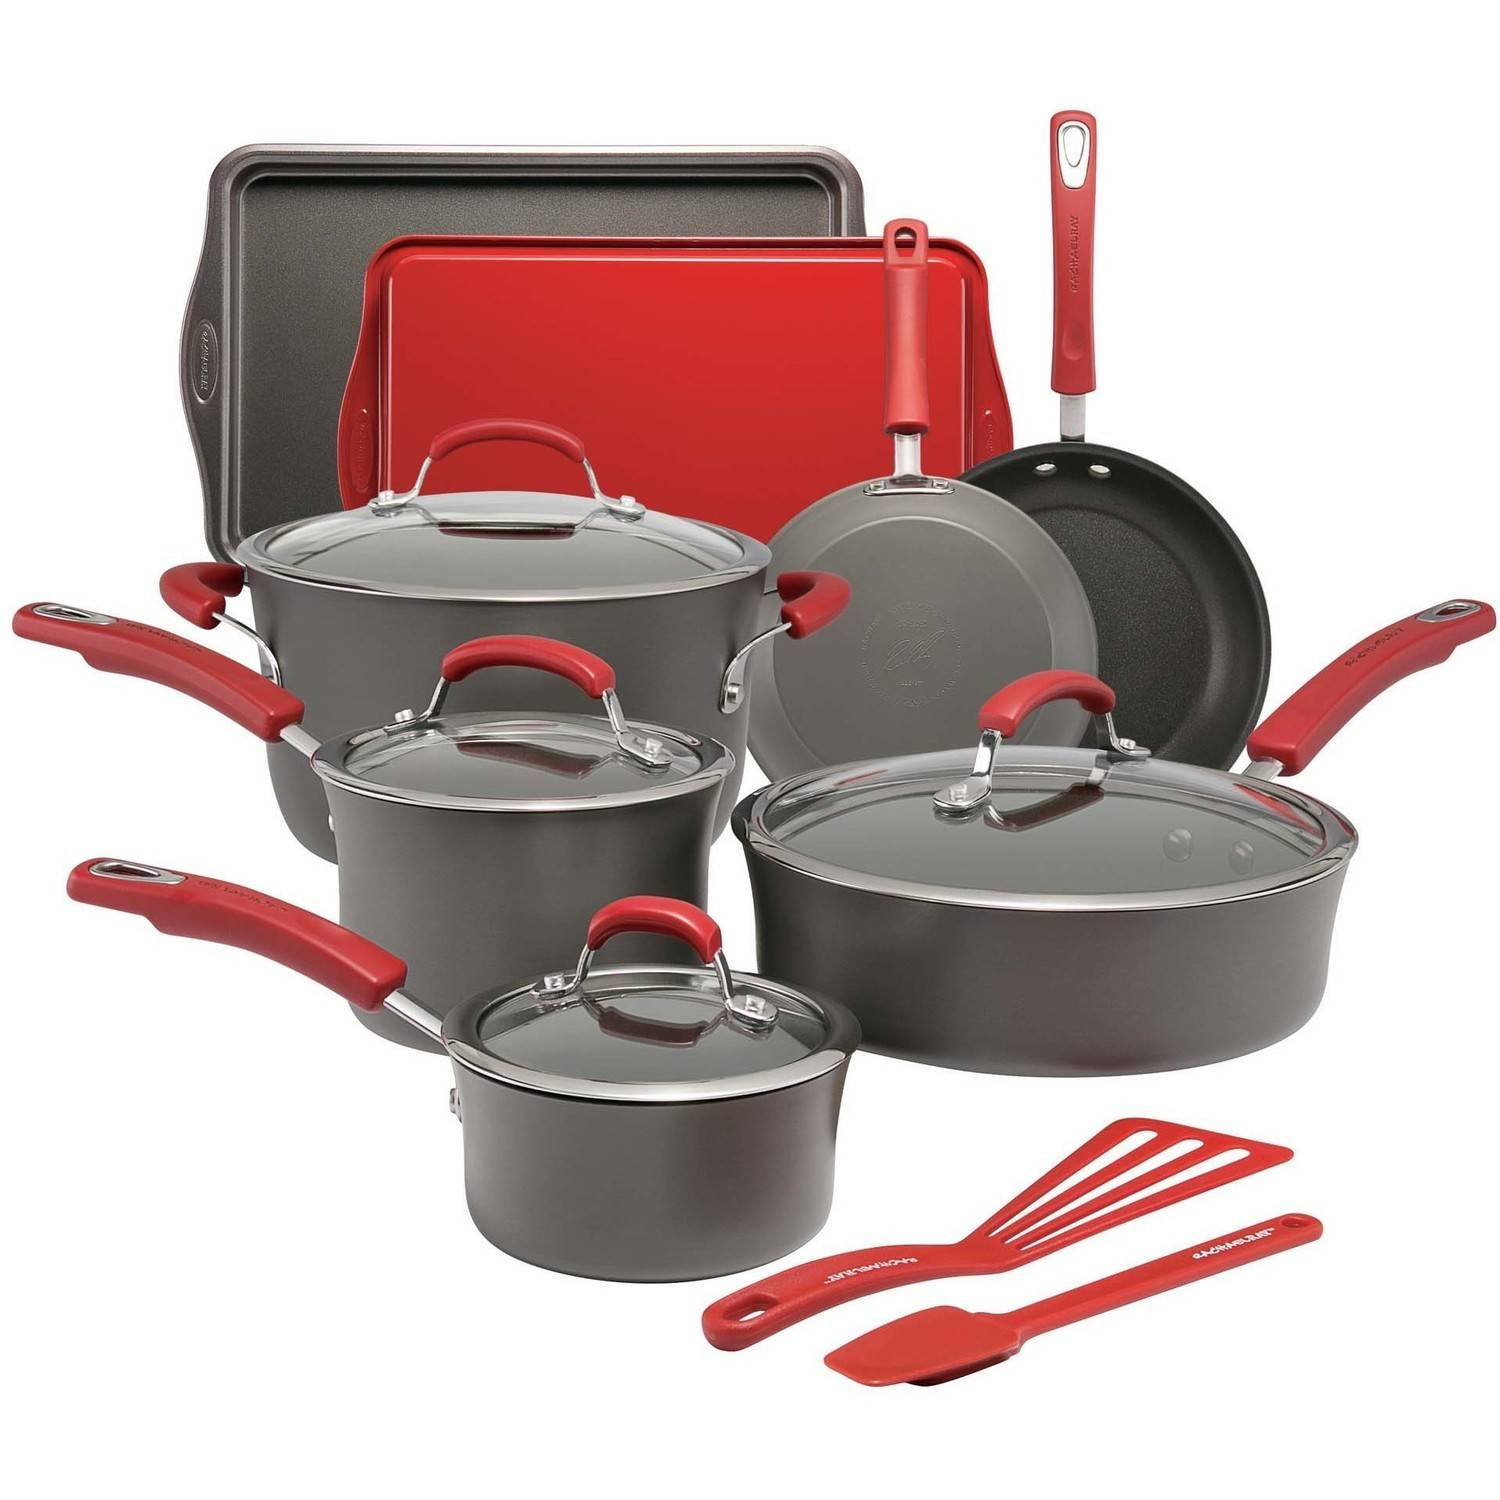 rachael ray nonstick 14piece cookware set grey with red handles